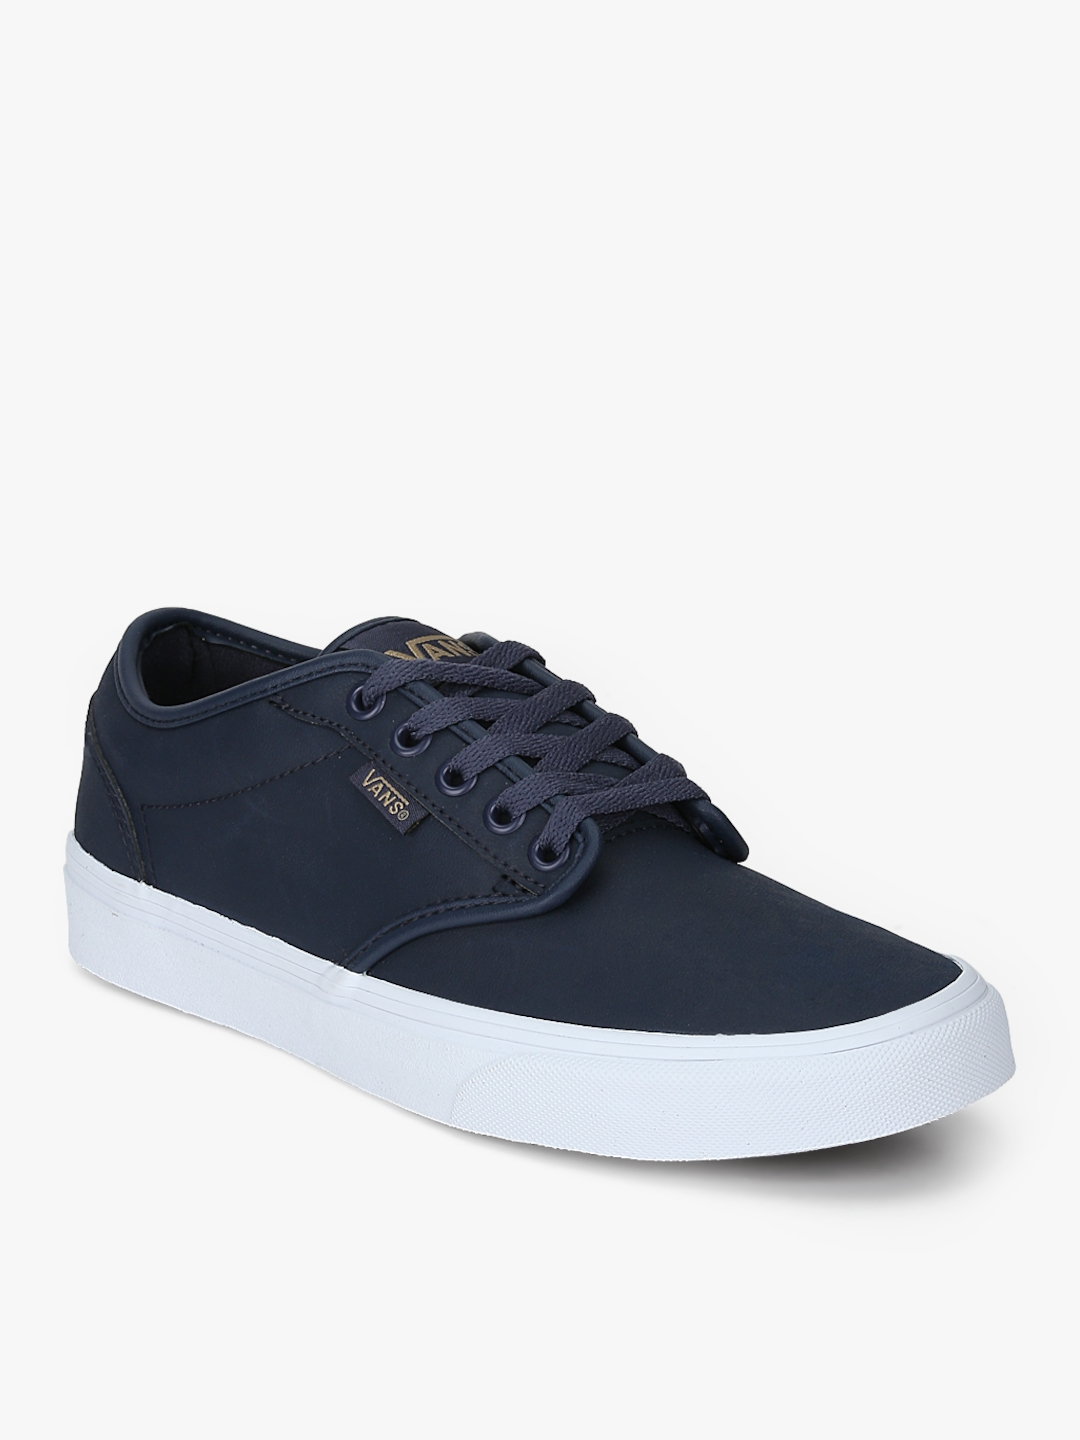 983be359ed Buy Vans Men Navy Blue Atwood Sneakers - Casual Shoes for Men ...